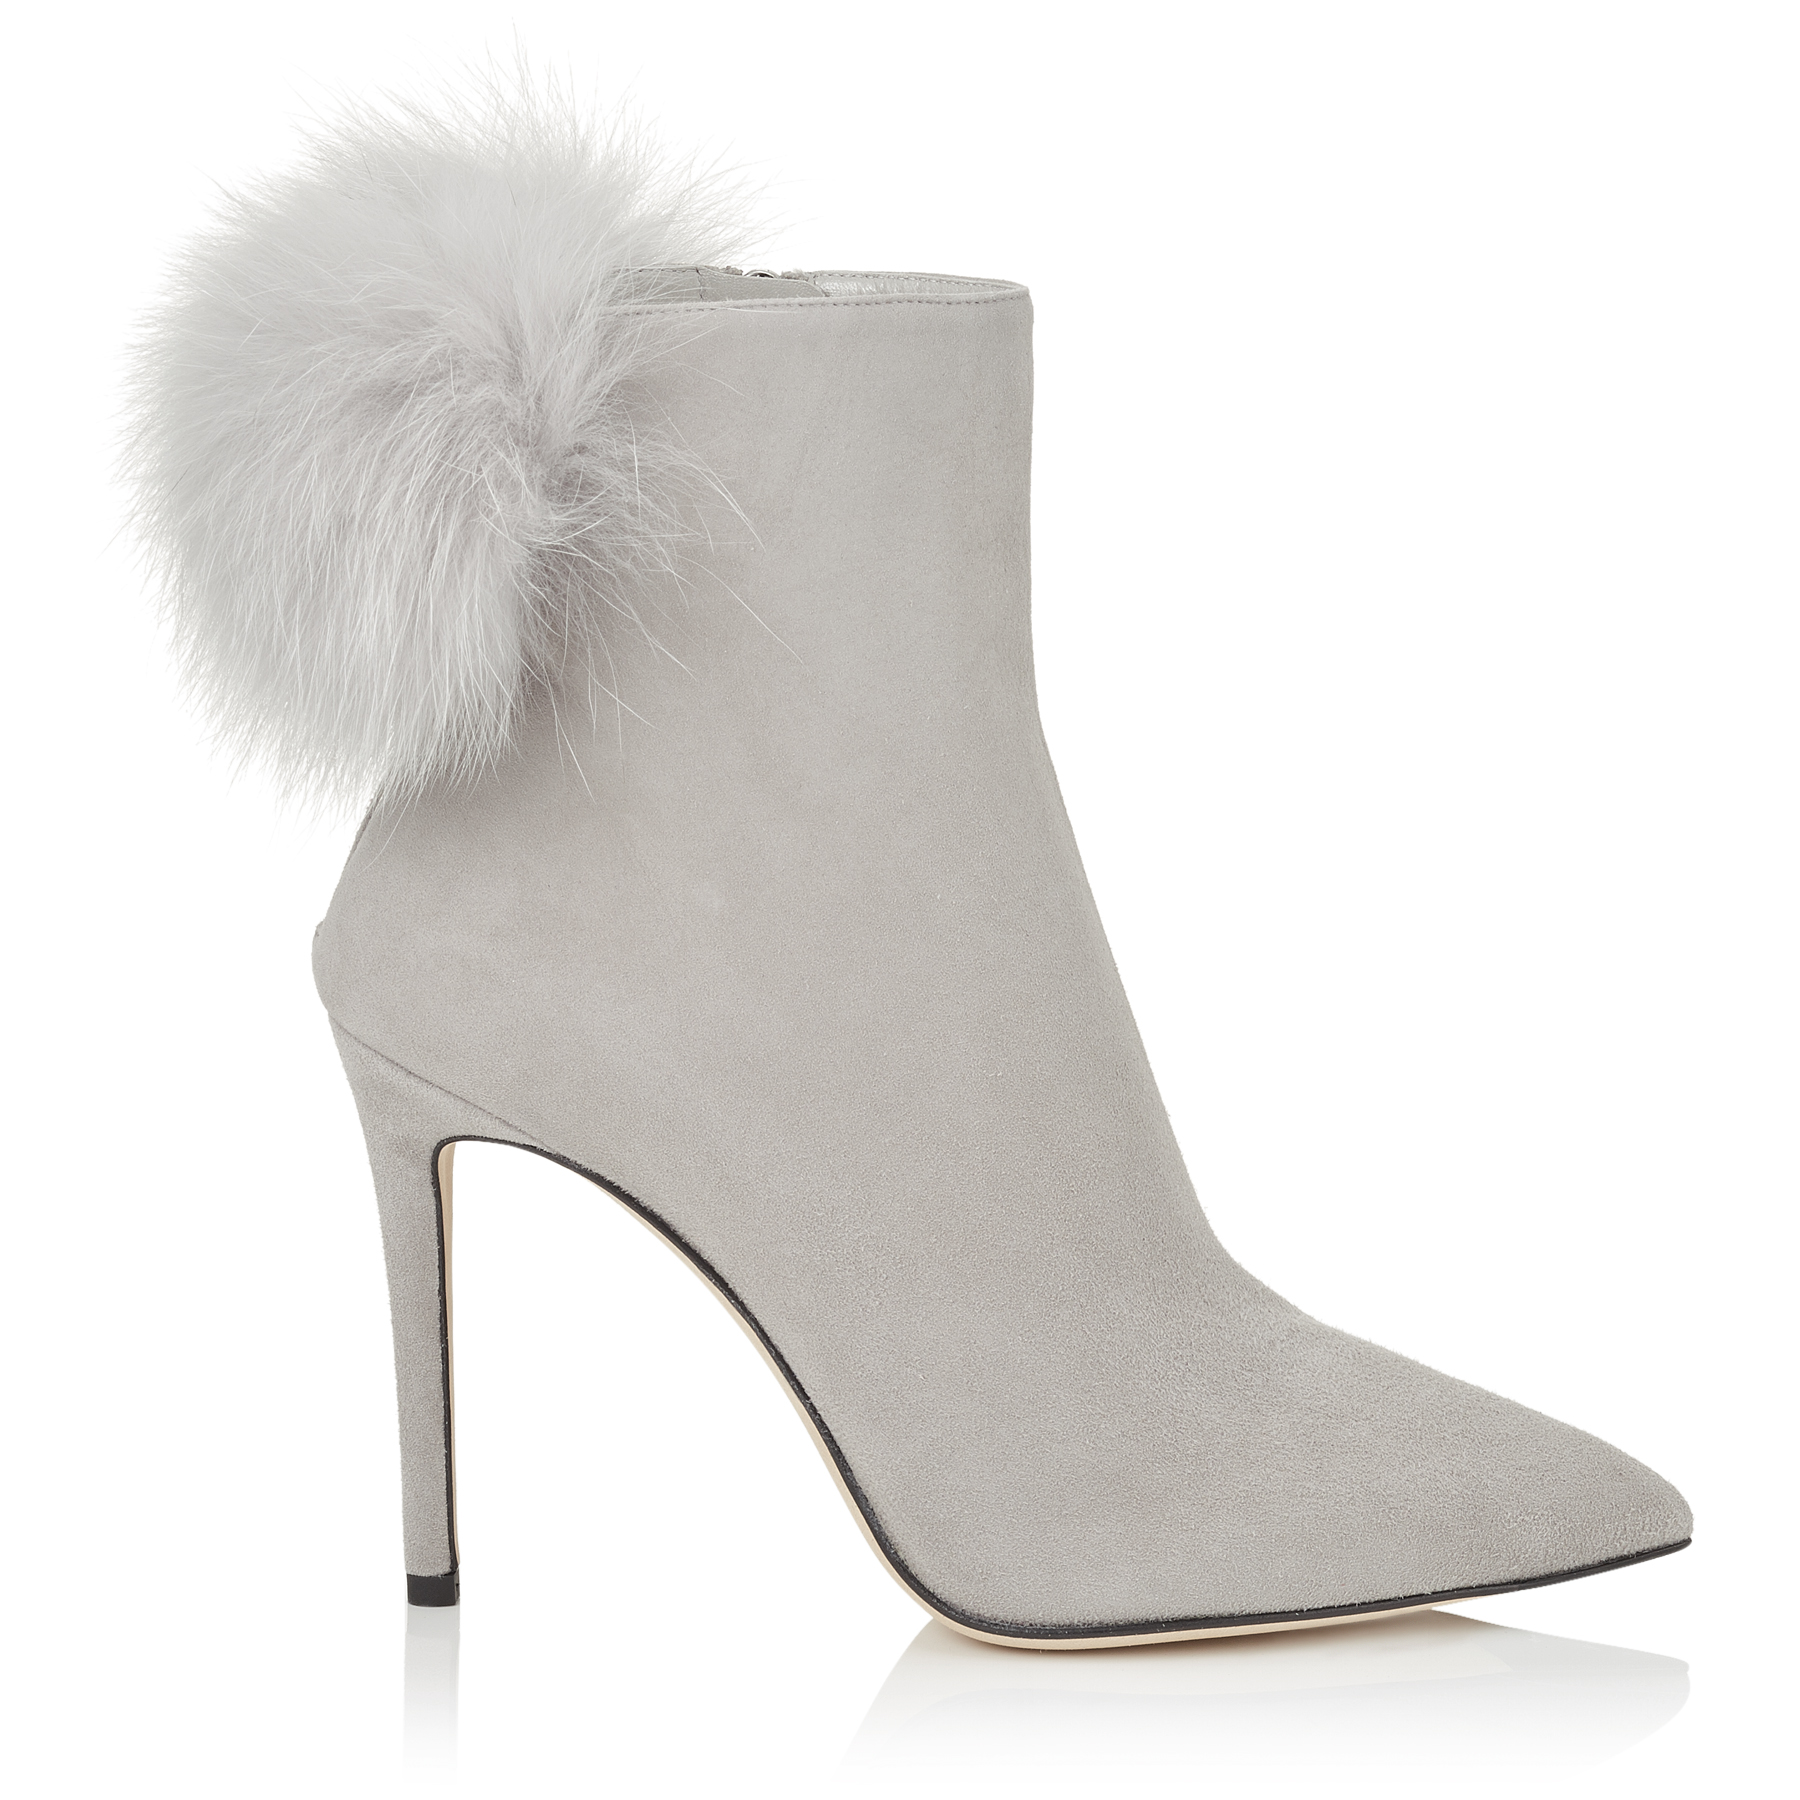 TESLER 100 Moonstone Suede Booties with White Fox Fur Pom Poms by Jimmy Choo